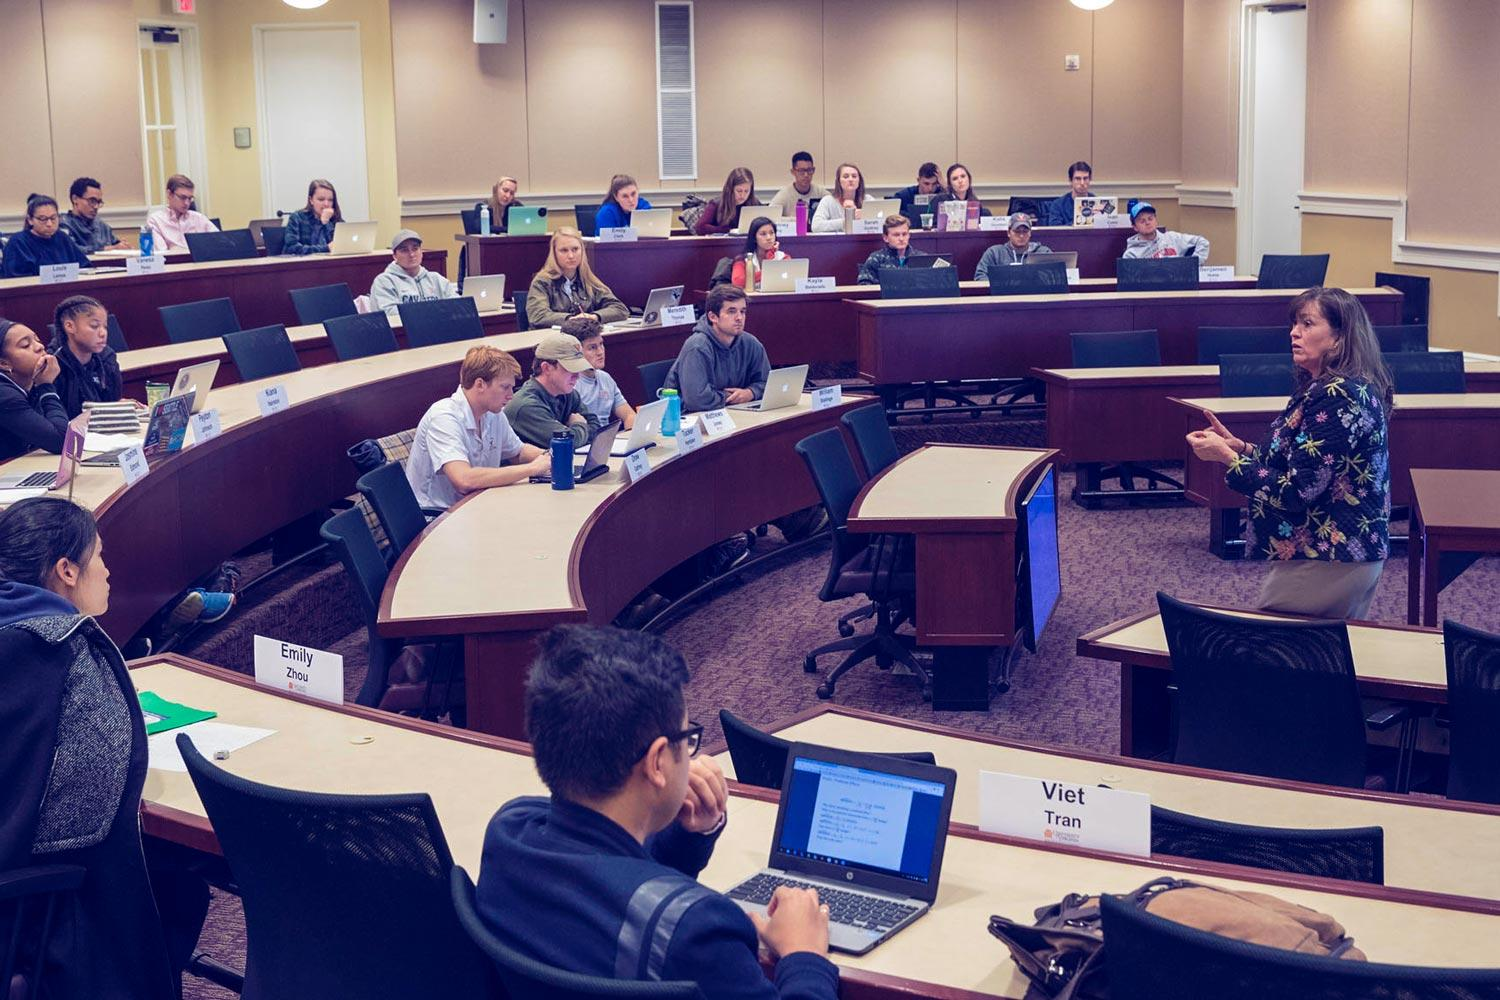 In the personal finance class offered by the McIntire School of Commerce, non-business students learn about building credit, saving for a home or creating an investment portfolio.